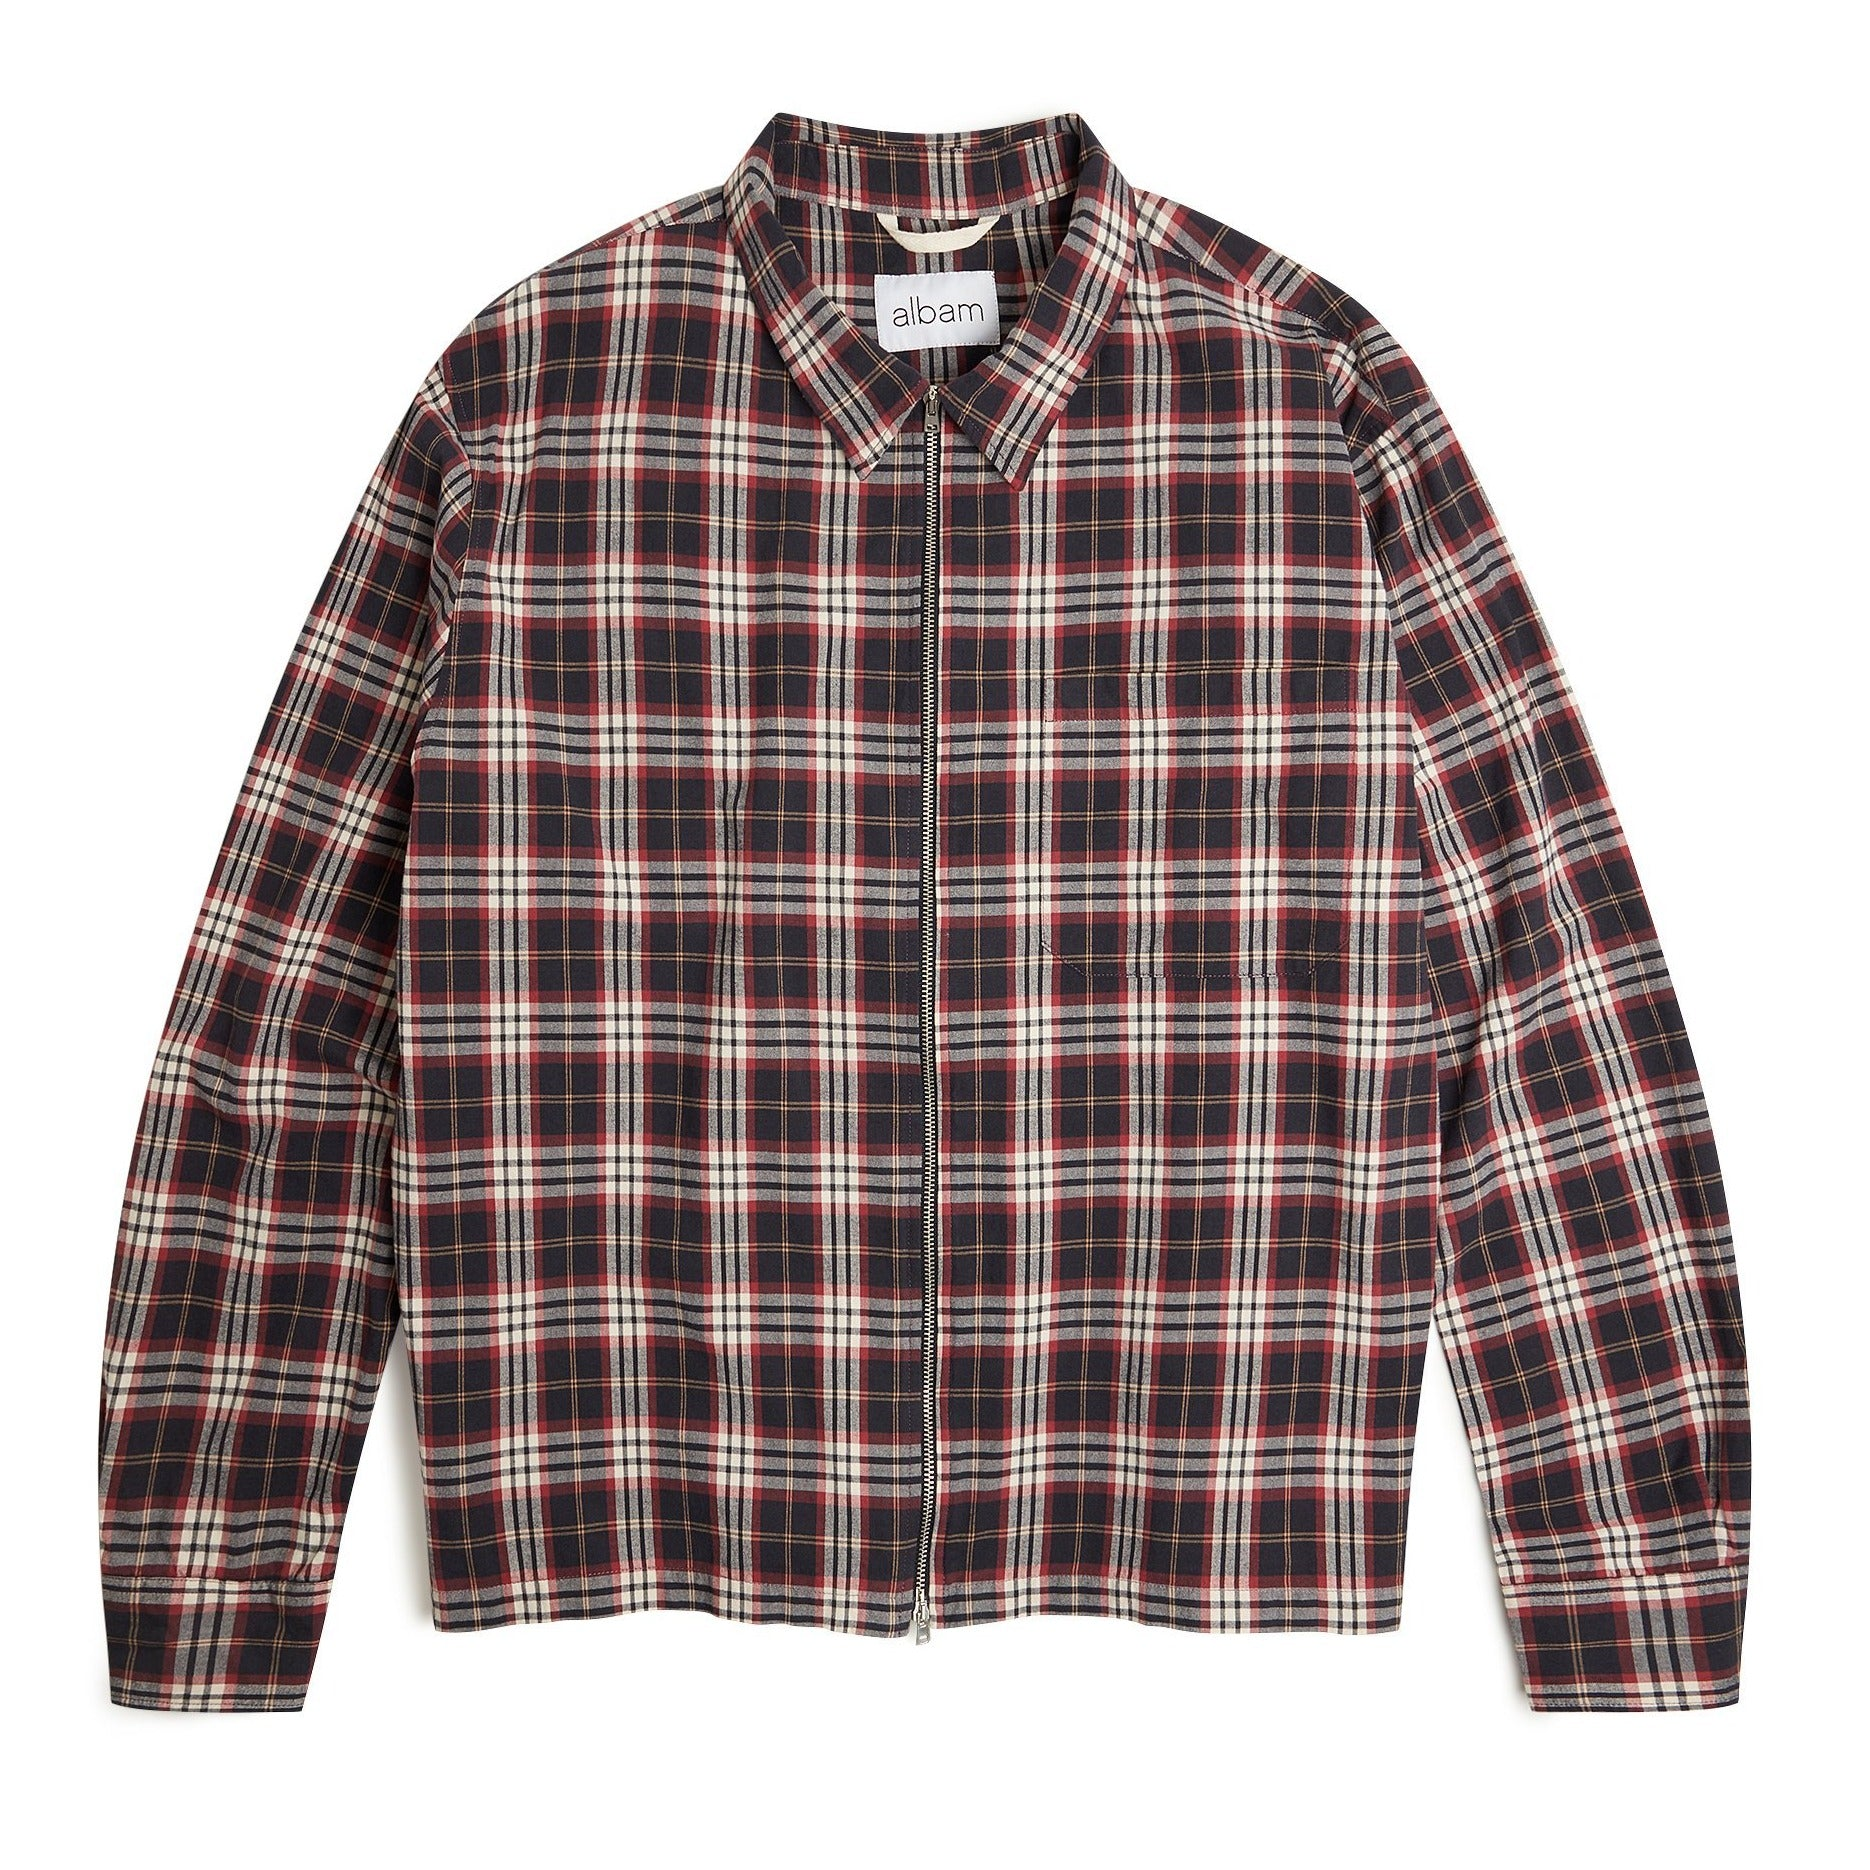 Albam Flannel Blake Jacket - Charcoal